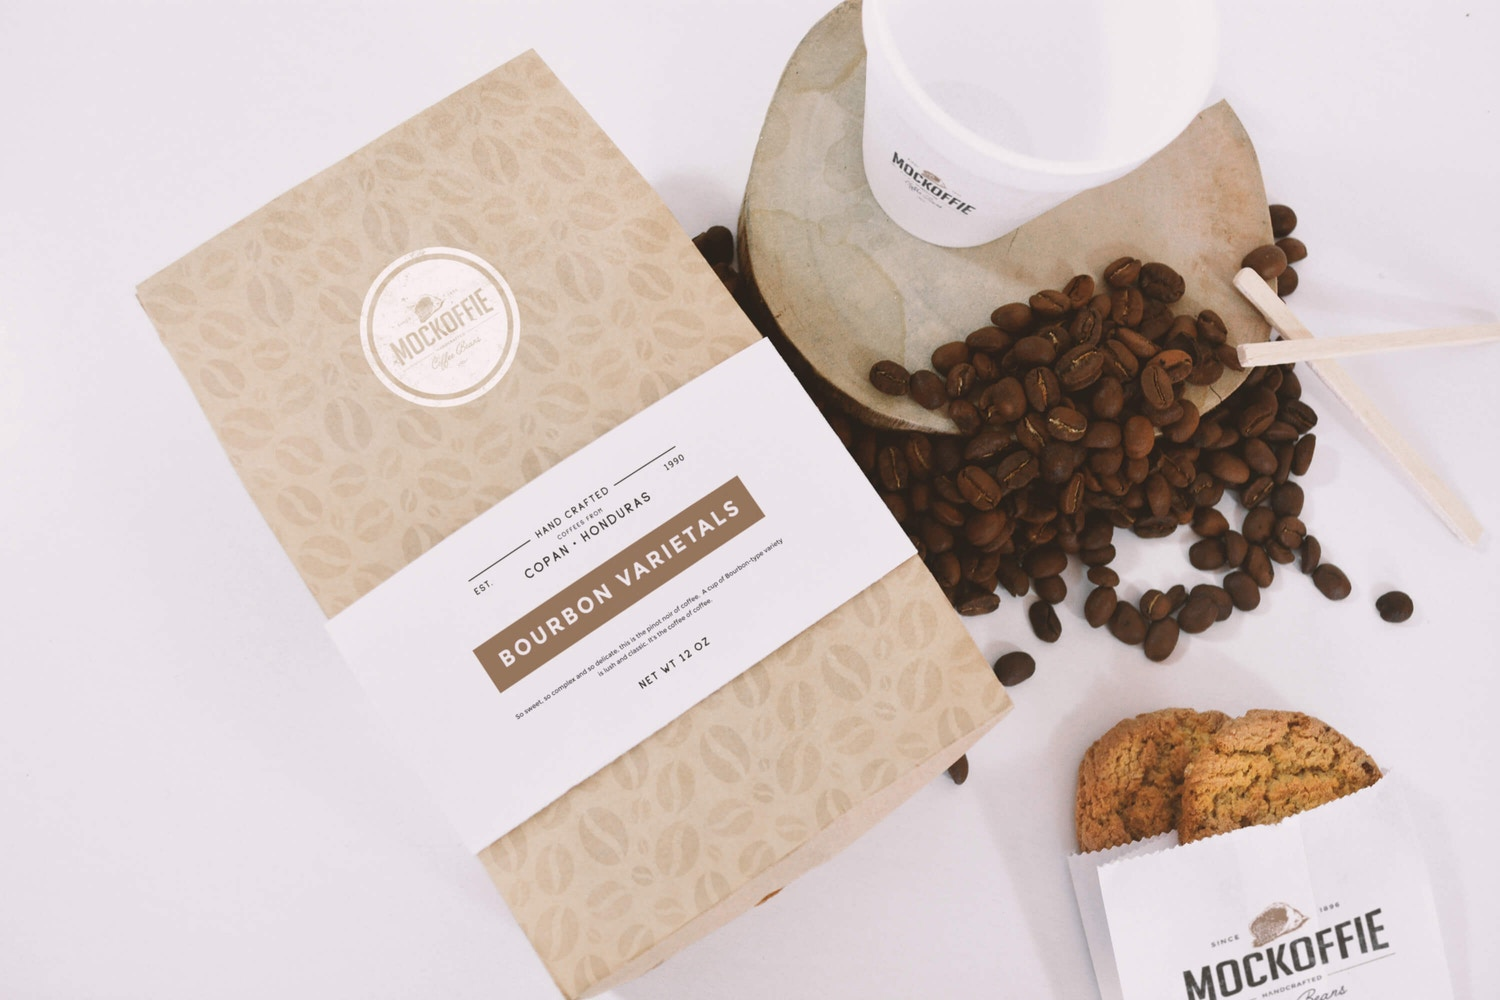 Coffee Bag and Cup Mockup Top View por Eduardo Mejia en Original Mockups